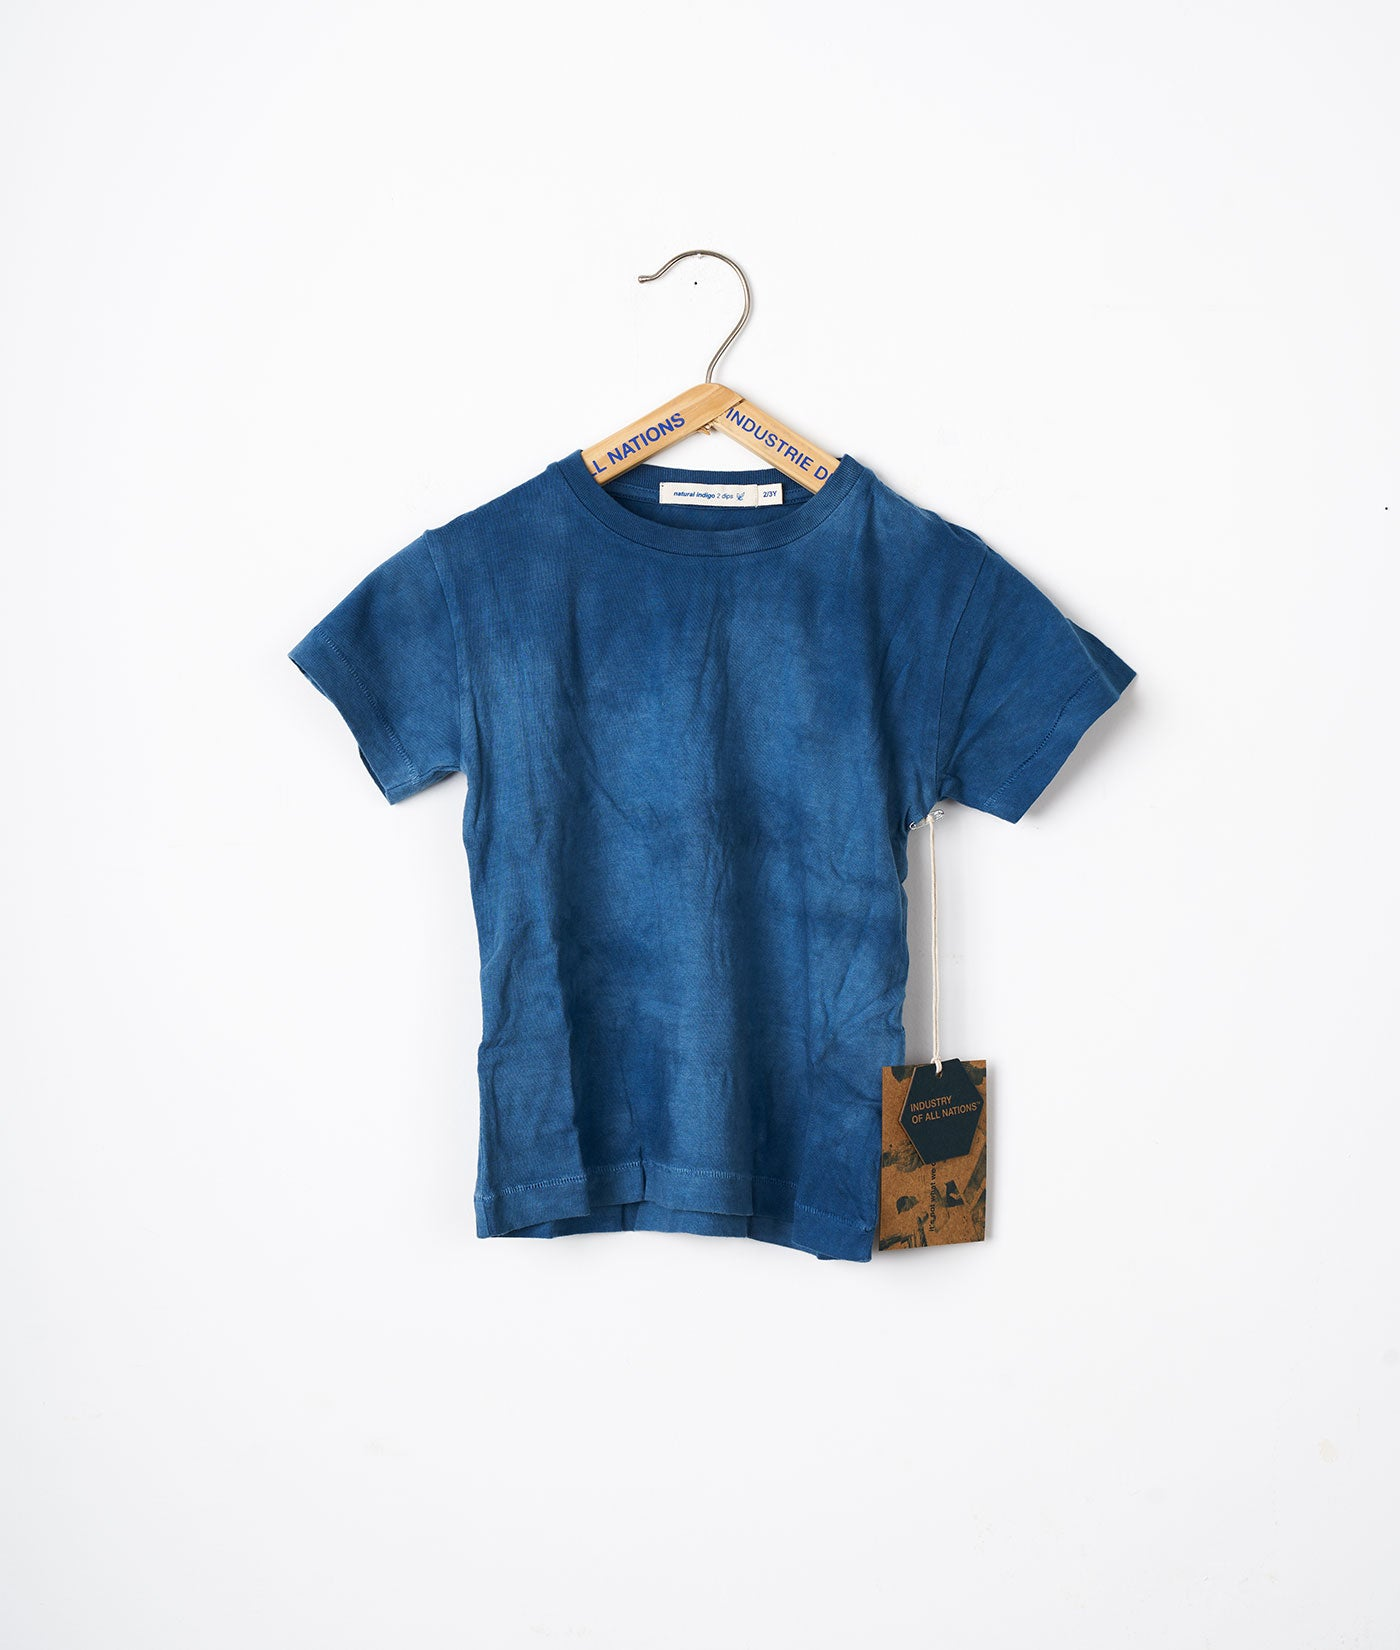 Industry of All Nations Kids Organic Cotton T-Shirt Indigo 2